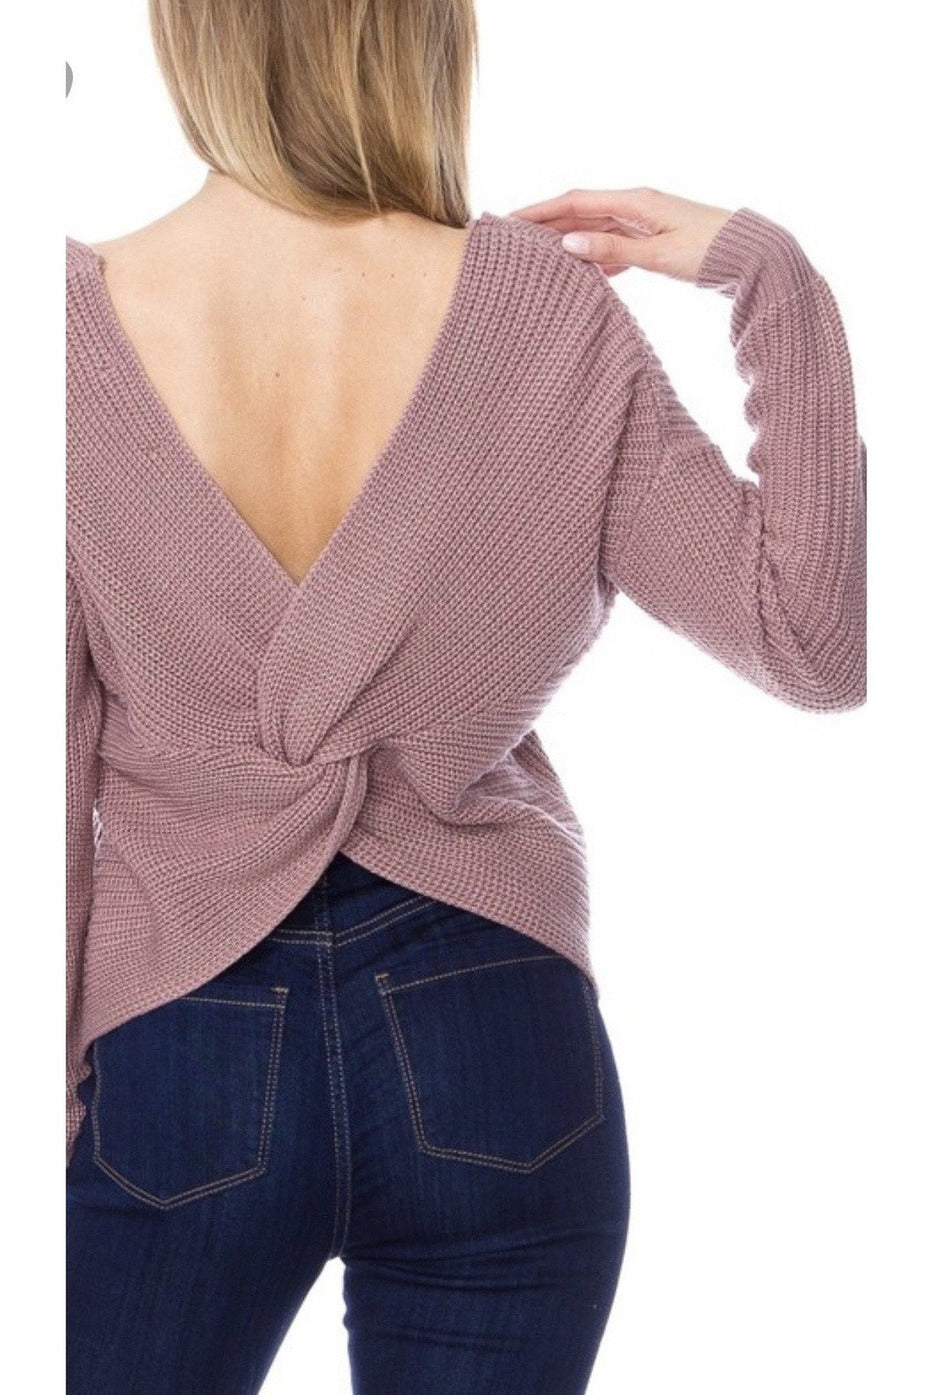 Kendra Twist-back Sweater in Mauve